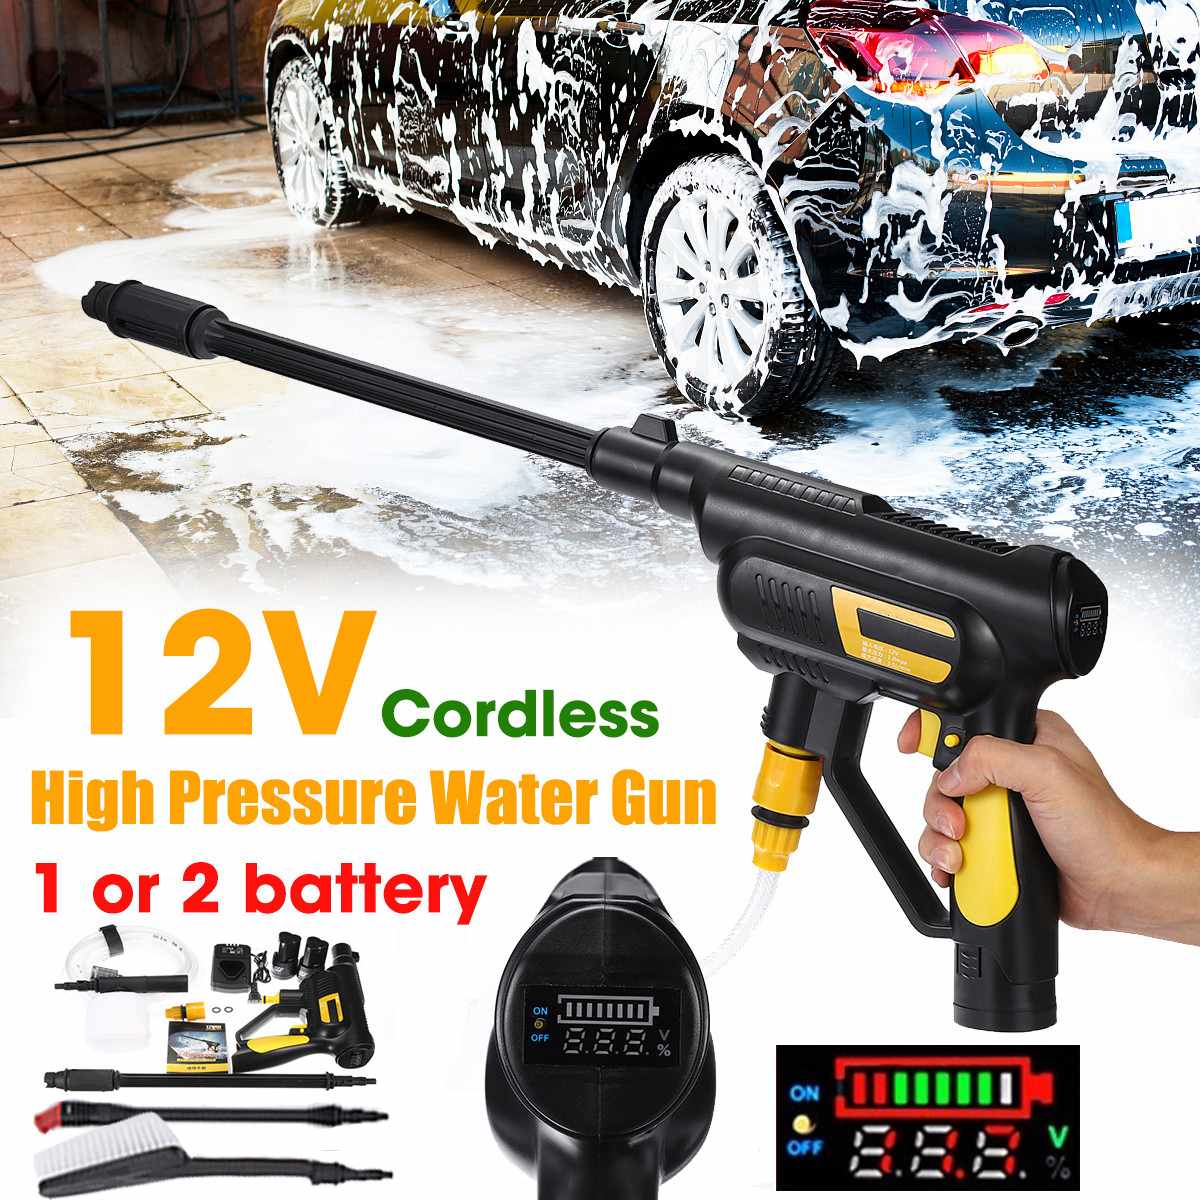 Car Washer 12V Cordless Portable Pressure Clean Car Portable Water Guns With Pot Washing Machine Electric Cleaning Device Home